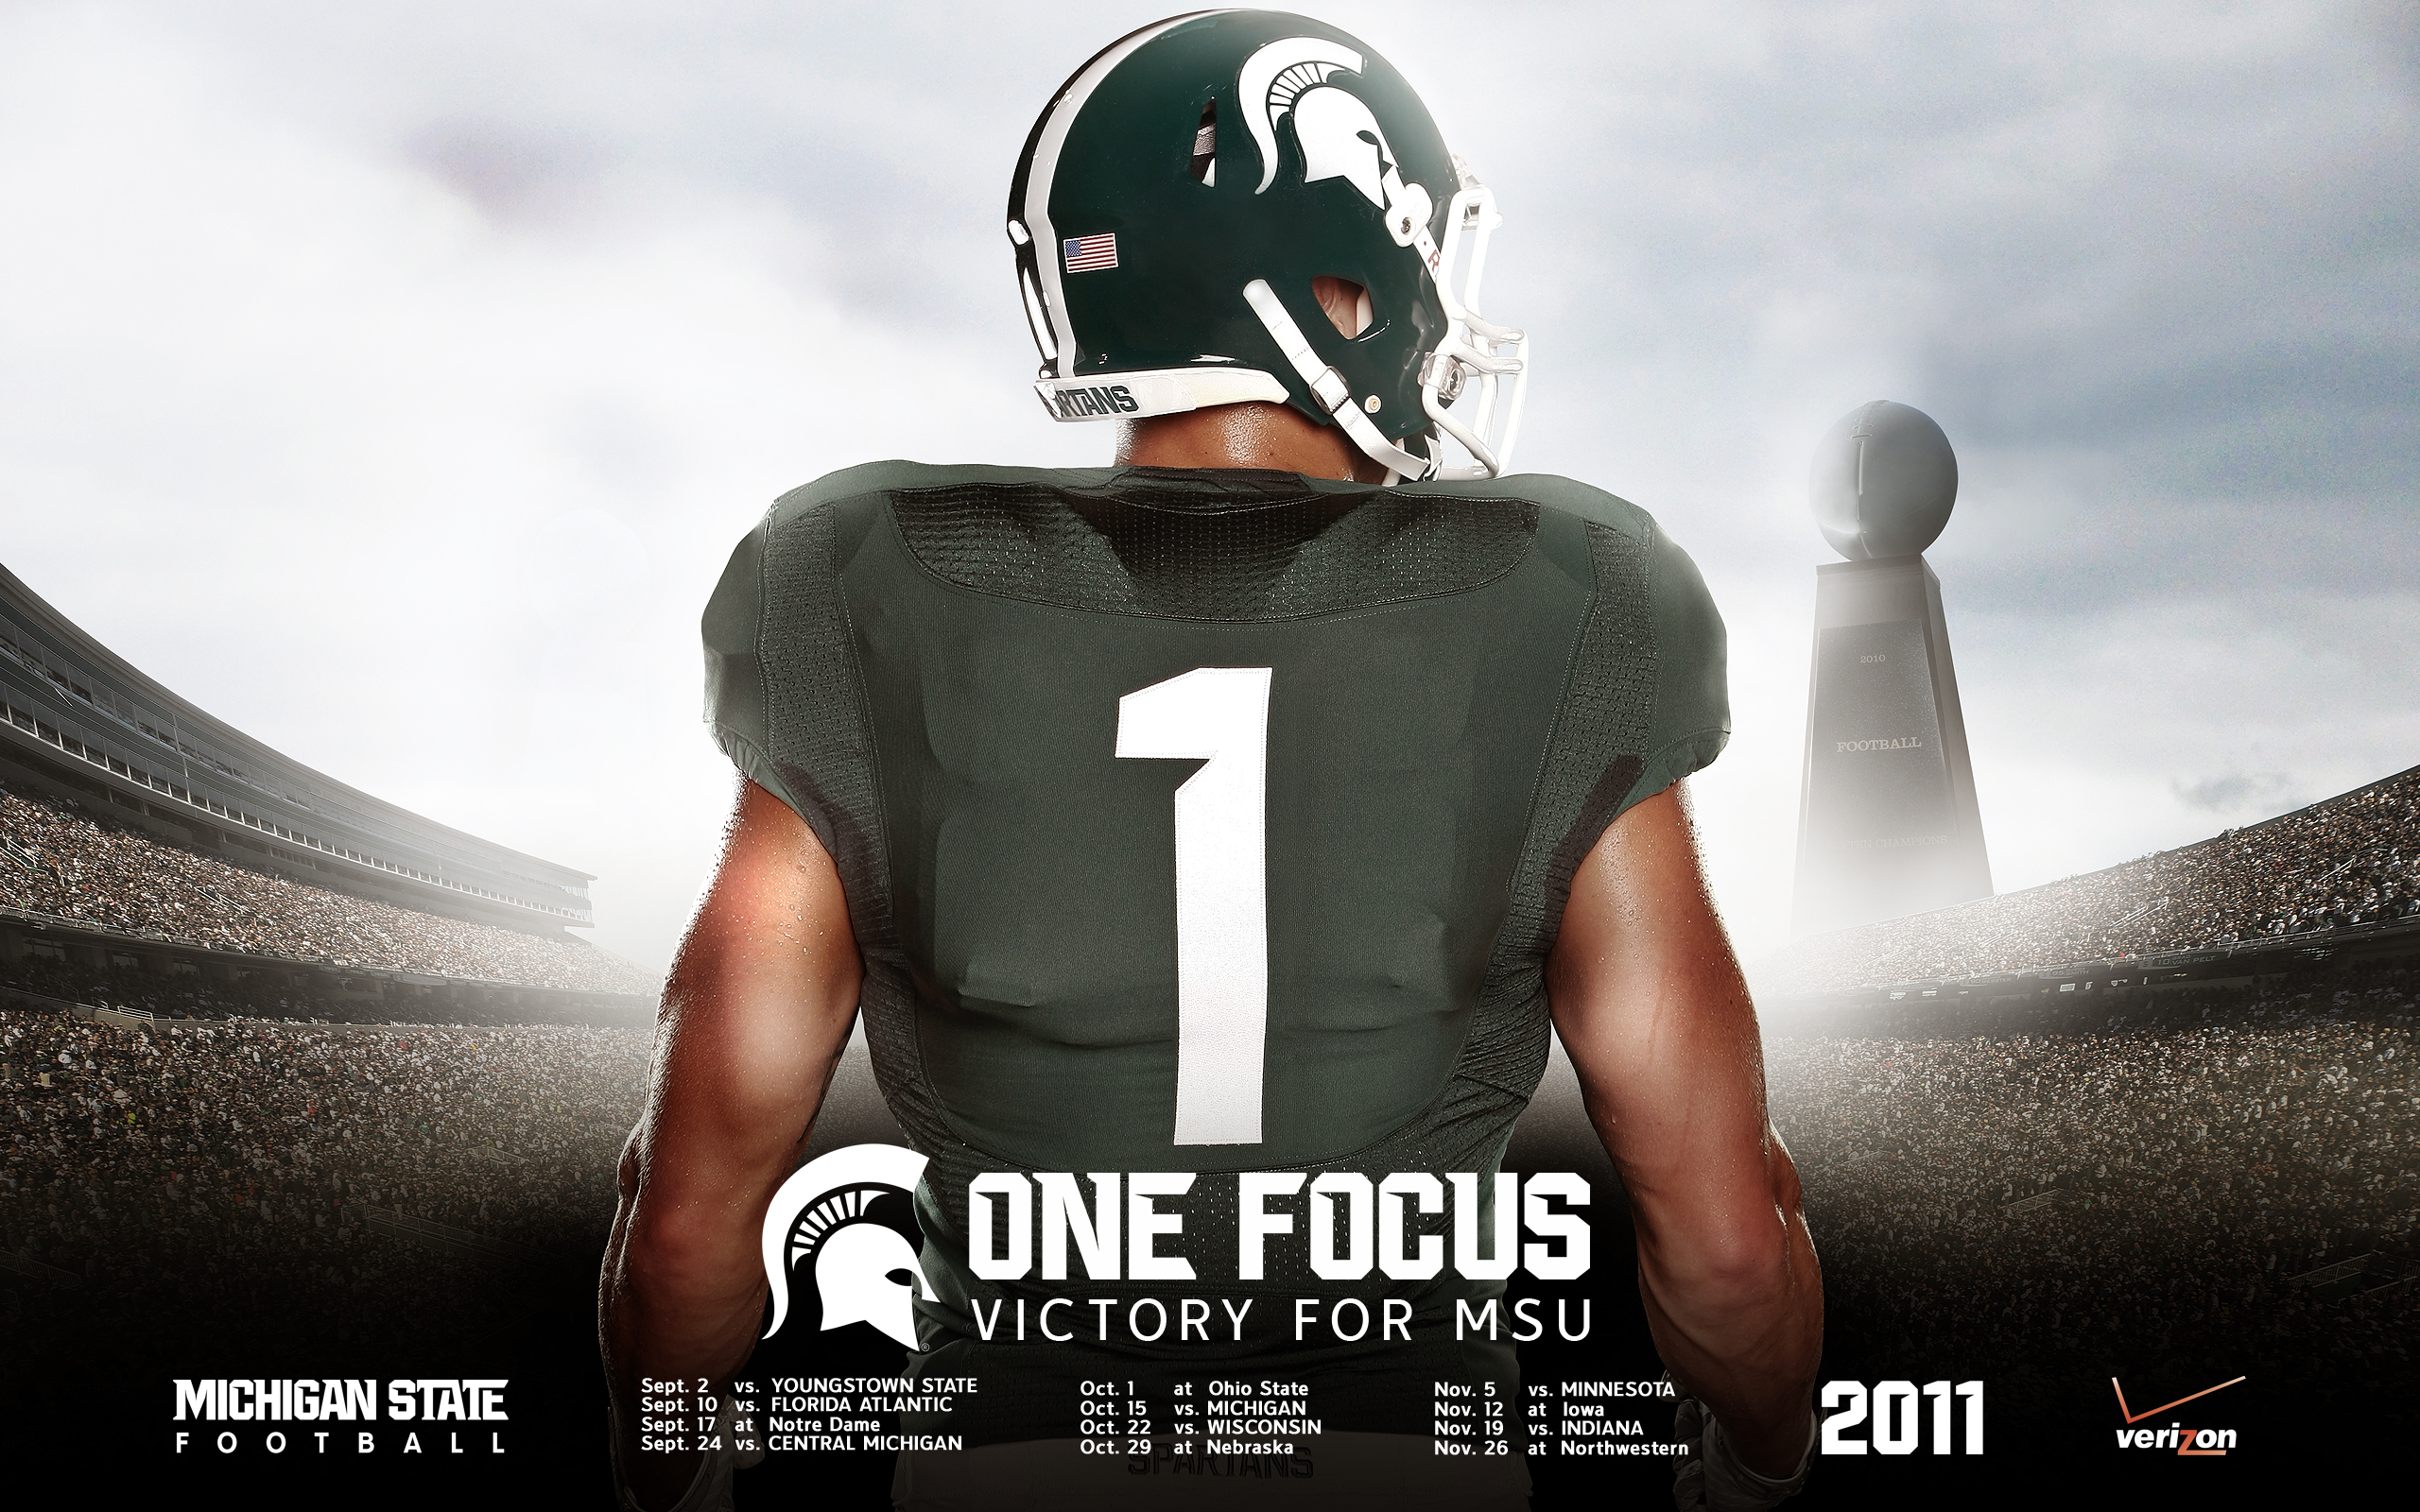 Michigan State University Wallpapers: [50+] Msu Football Schedule 2015 Wallpaper On WallpaperSafari